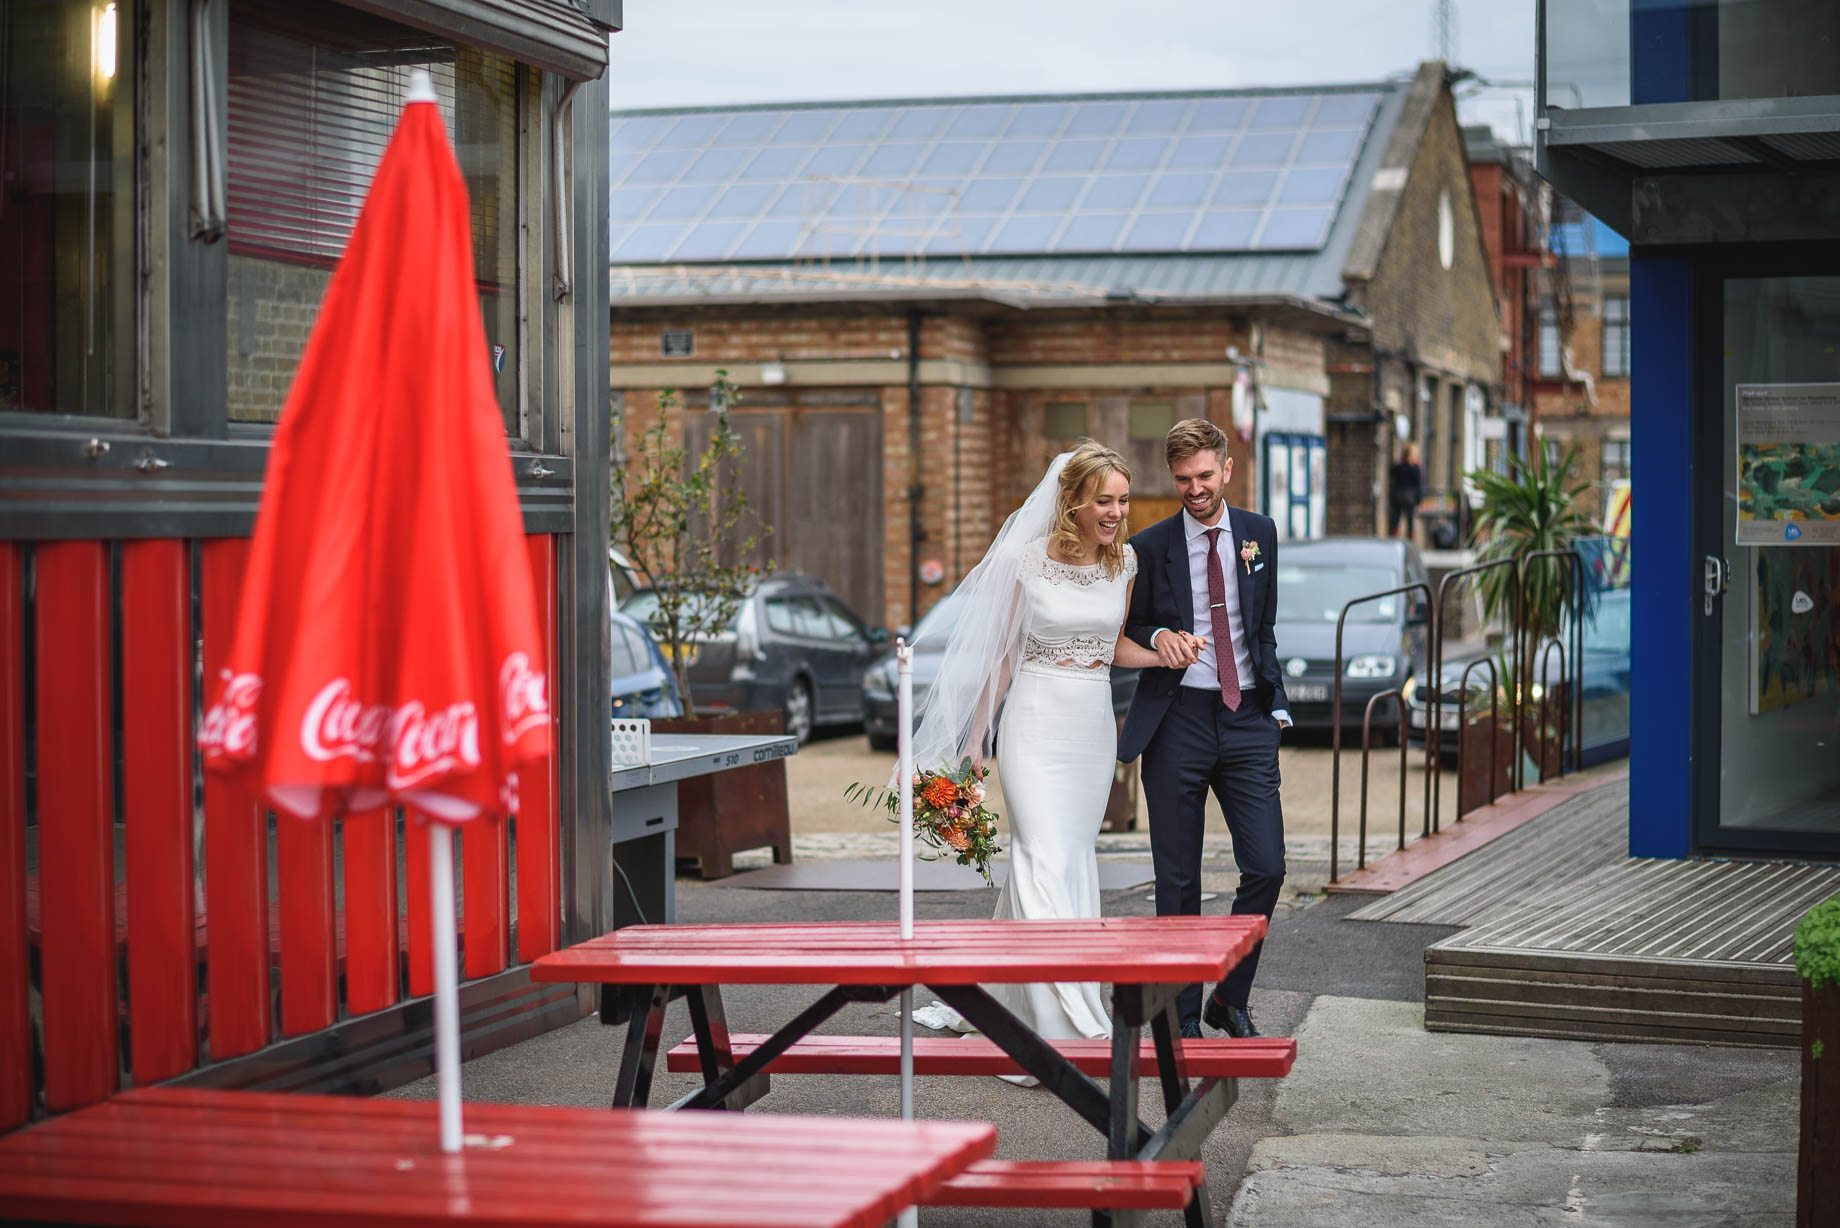 trinity-buoy-wharf-wedding-photography-guy-collier-photography-katie-and-james-120-of-213